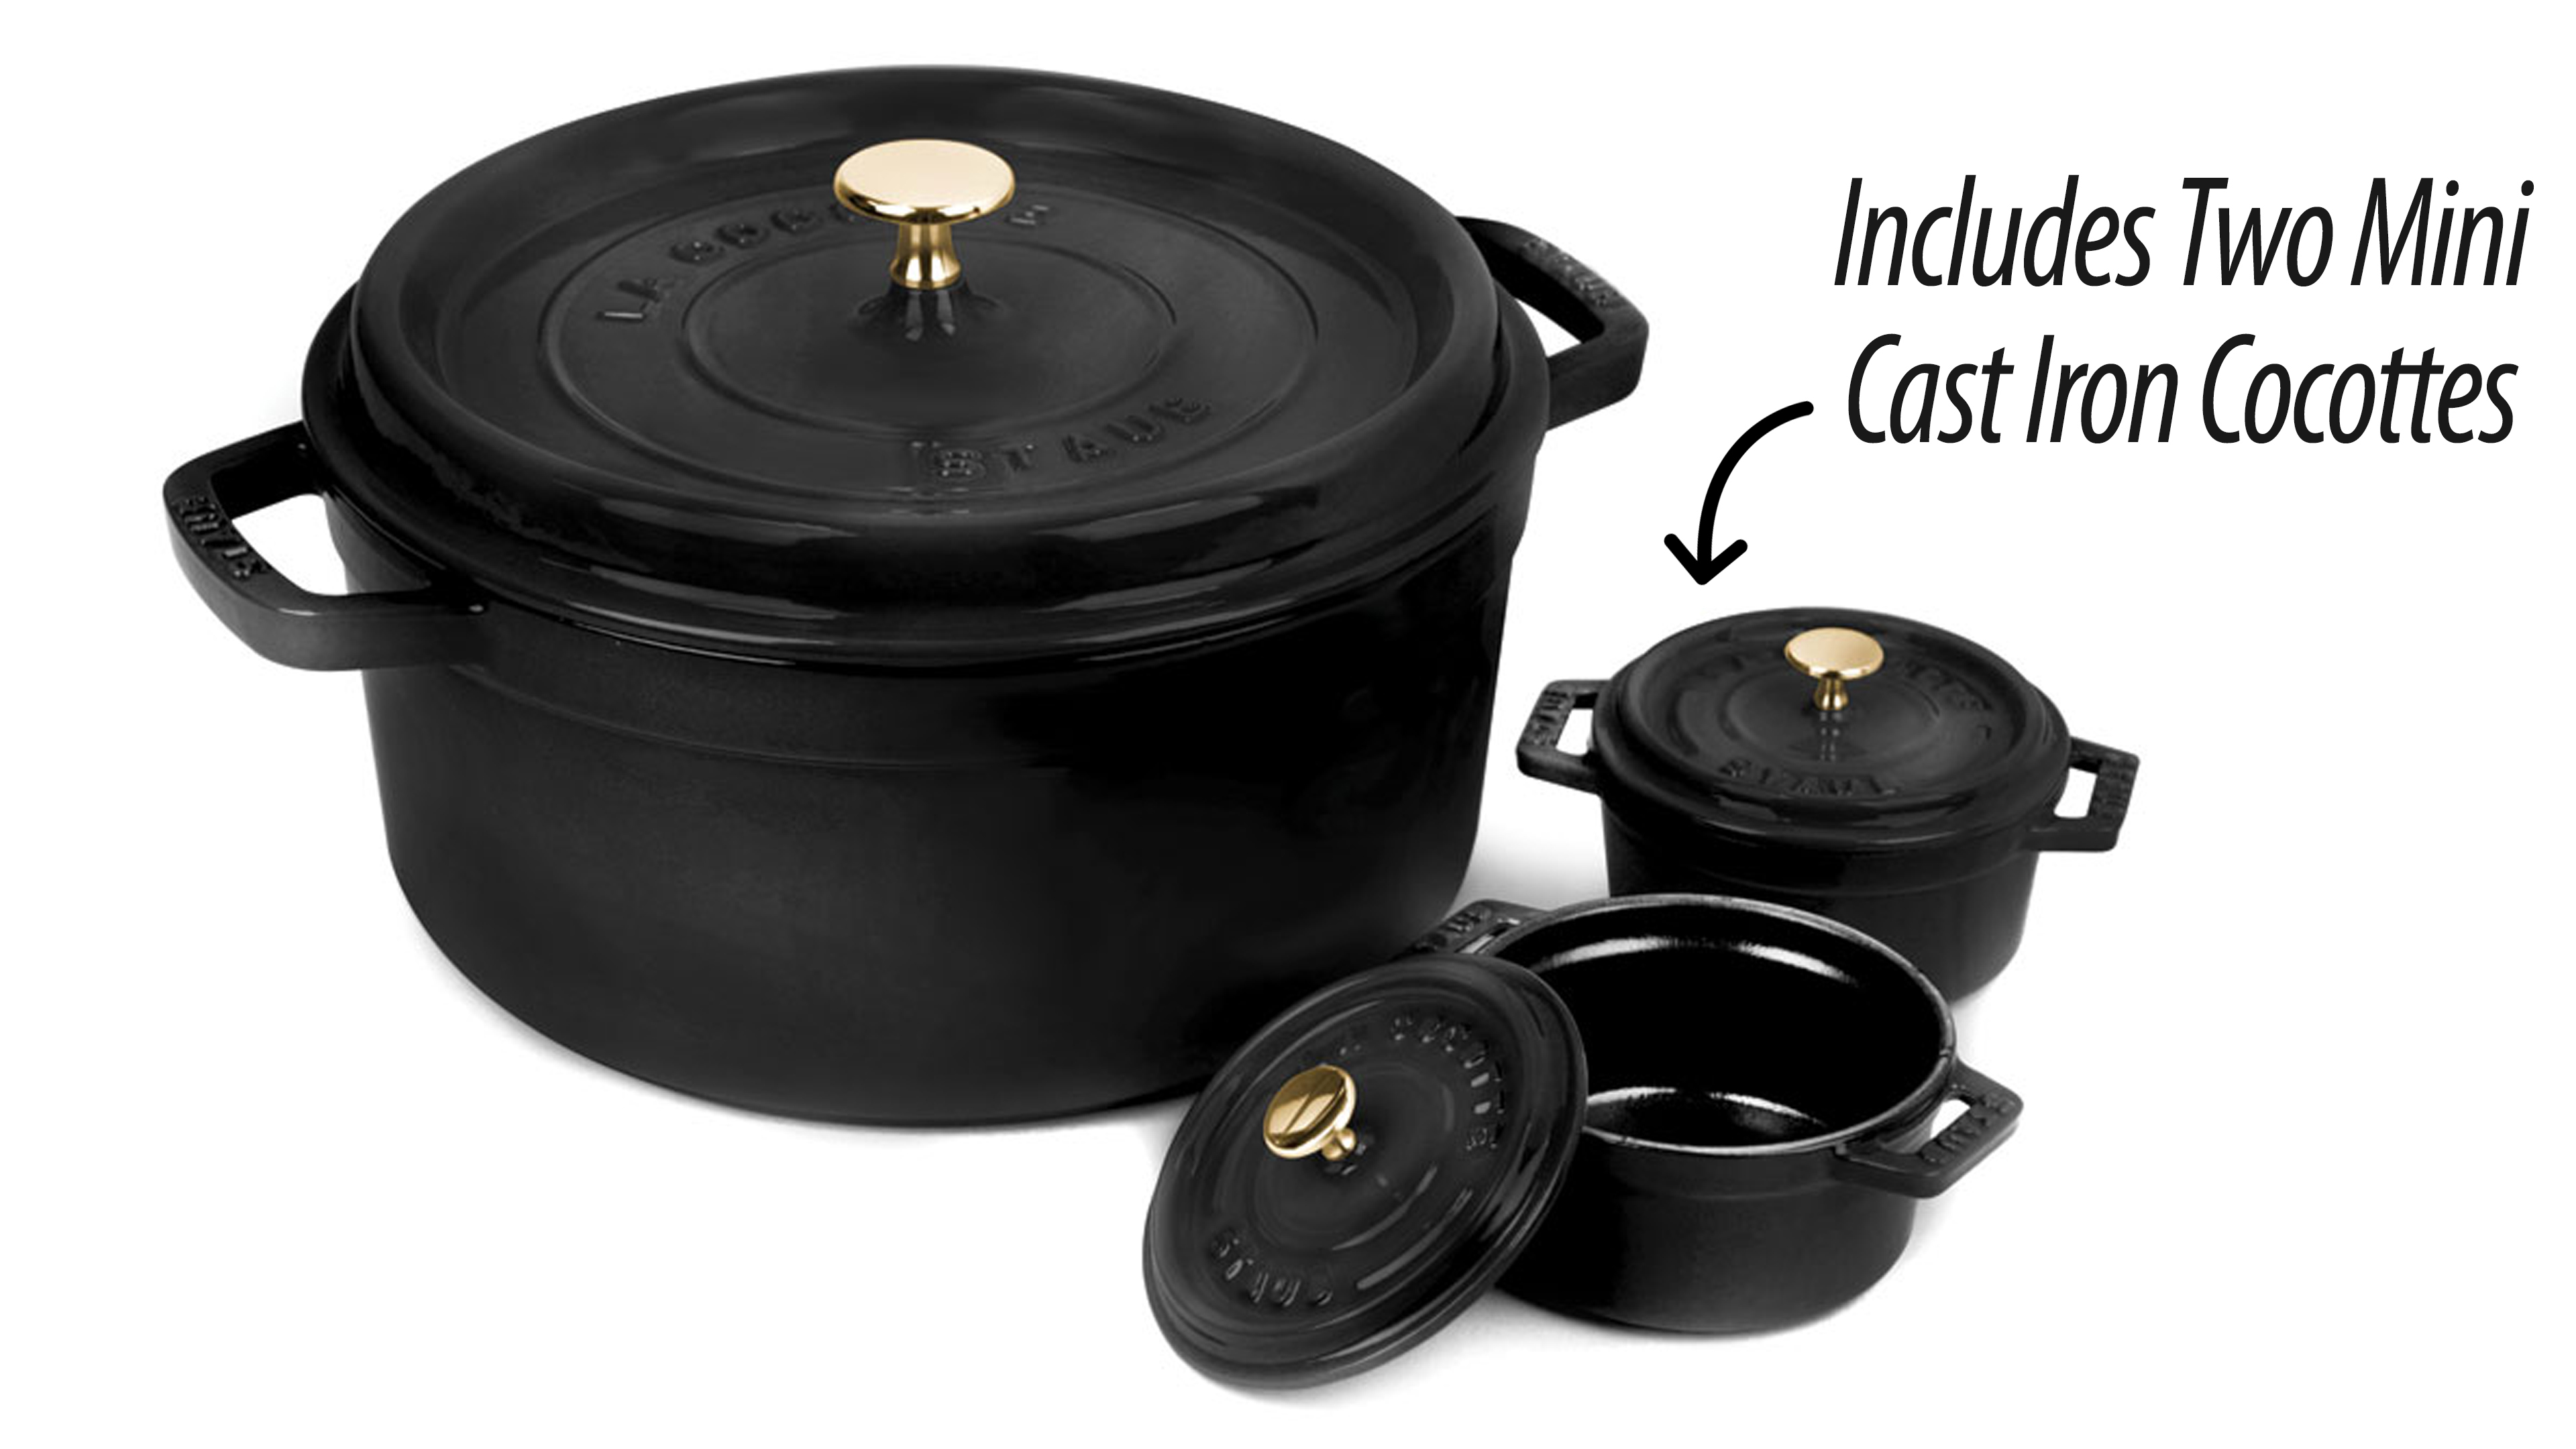 Staub Round Dutch Oven With Two Mini Cast Iron Cocottes 5